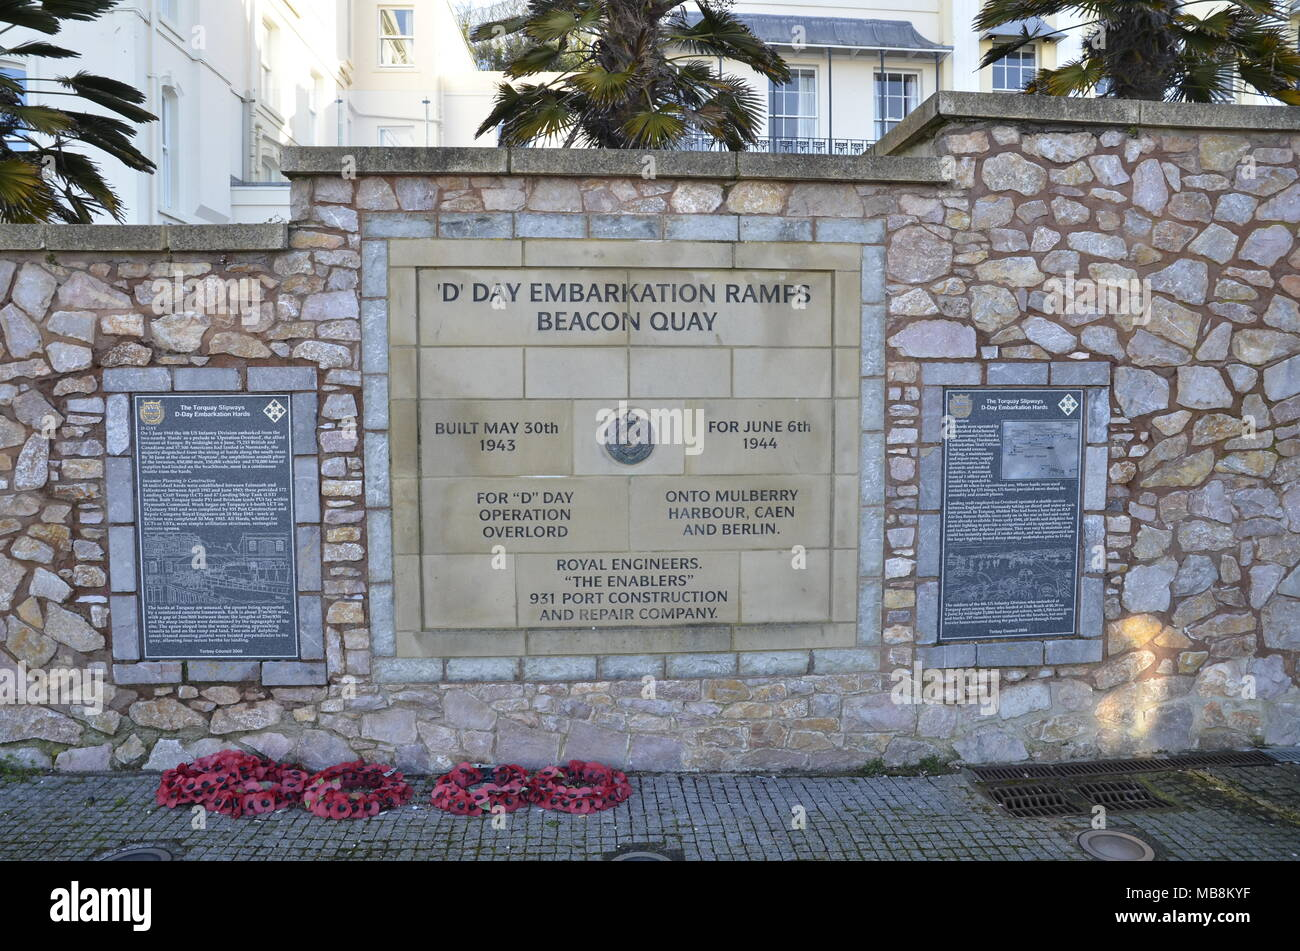 A memorial plaque at Beacon Quay in Torquay marking the embarkation of ships to the D-Day Operation Overlord  initiative in World War 2 - Stock Image